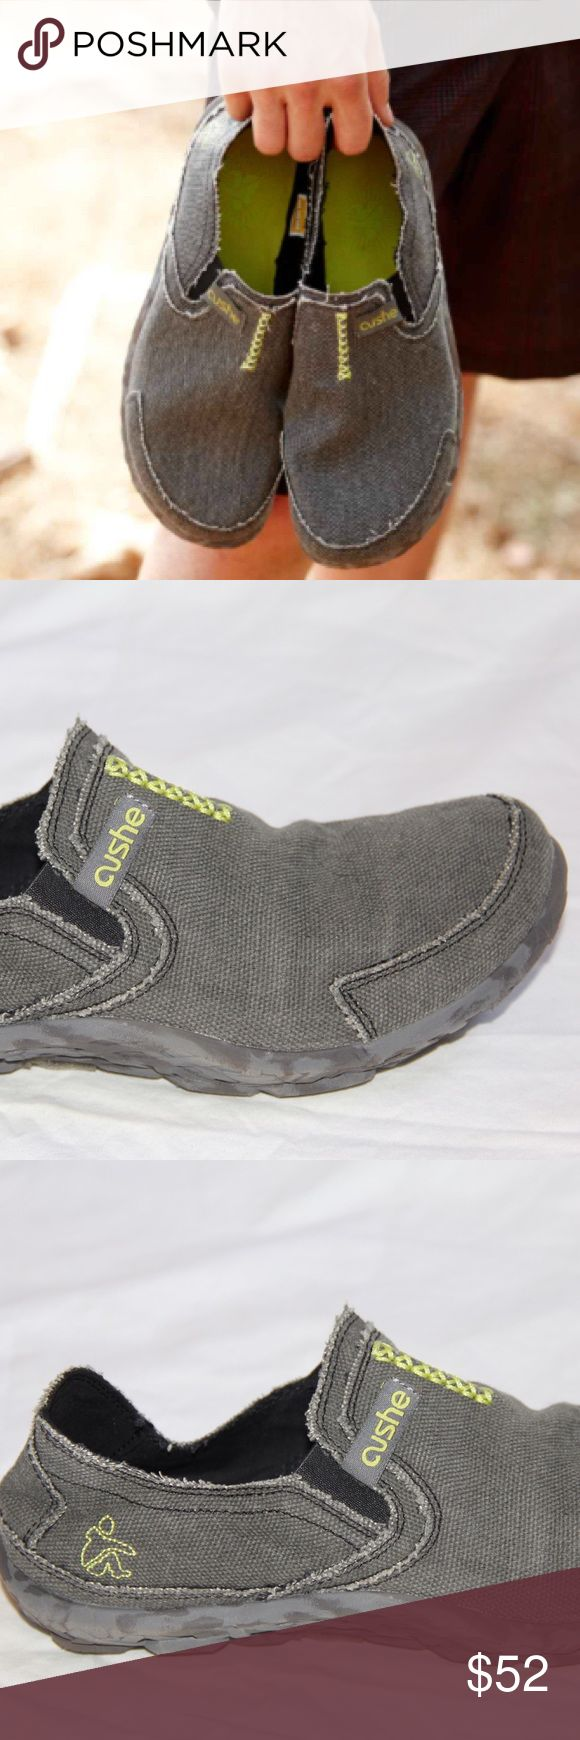 Men's cushe slipper shoes In excellent condition - worn once! Very lightweight.       **The Cushe Surf Slipper shoes slide on easy and offer remarkable, lasting comfort that's sure to please. ** cushe Shoes Loafers & Slip-Ons